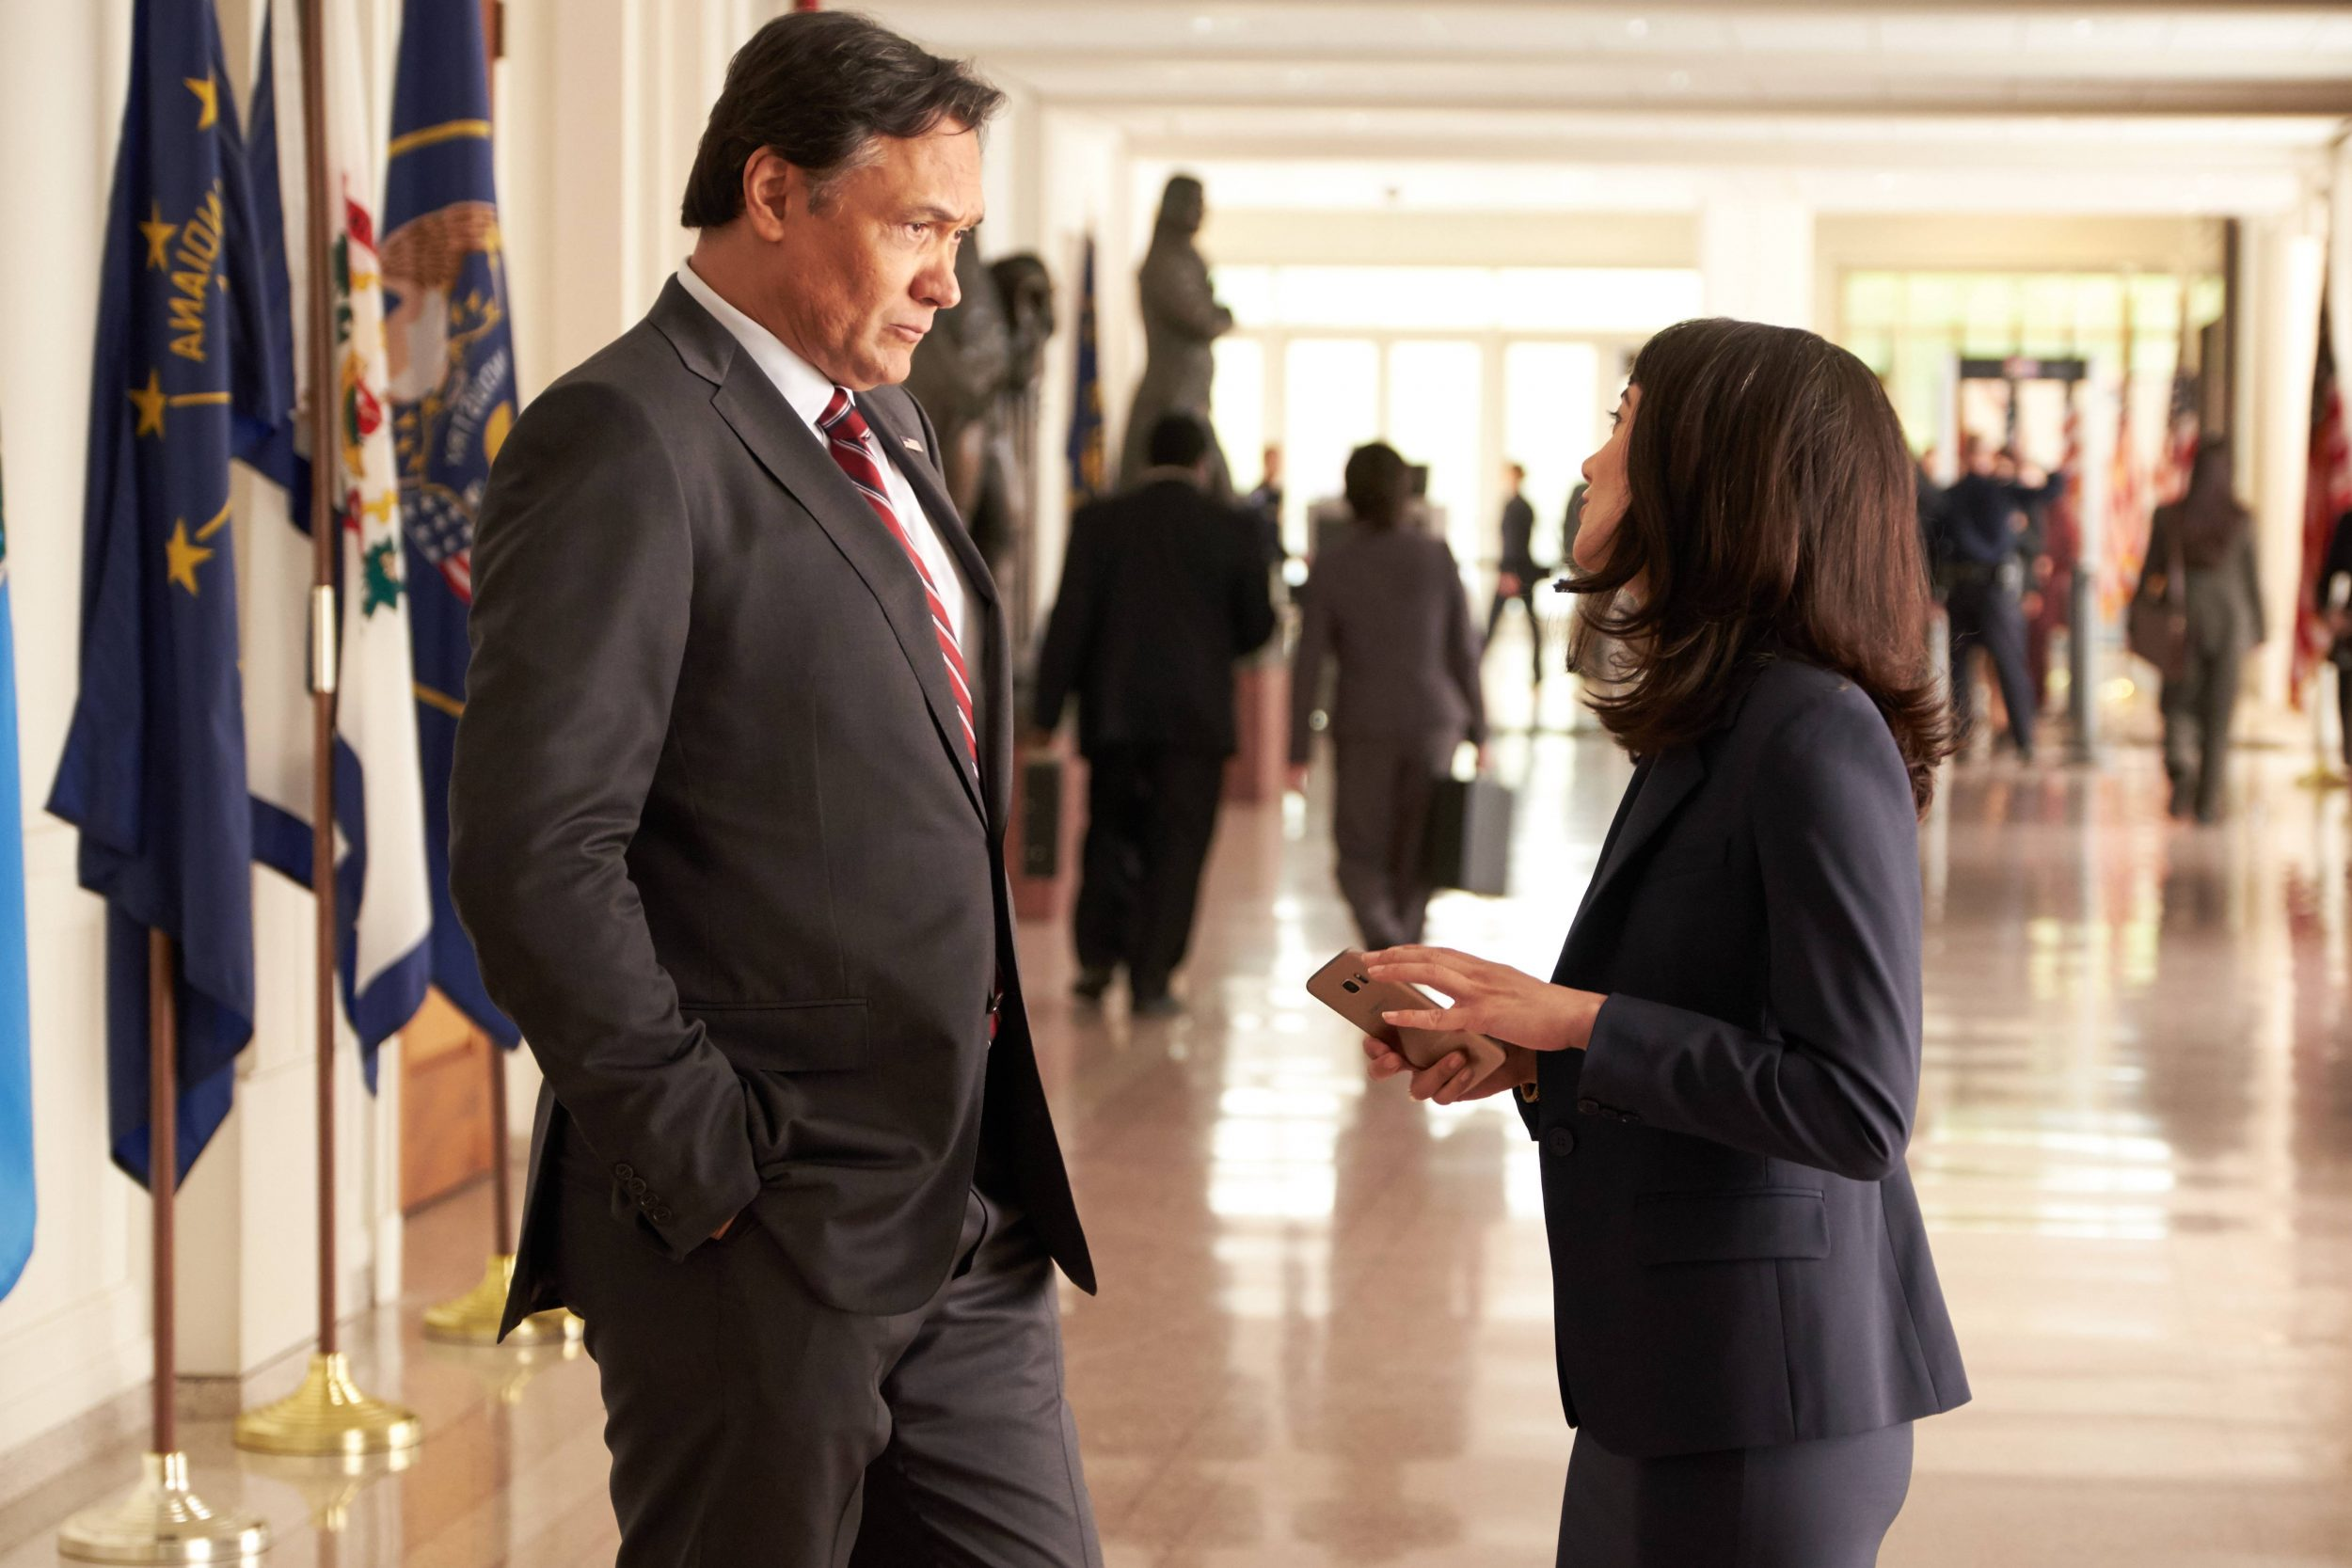 """24: LEGACY: L-R: Jimmy Smits and Sheila Vand. 24: LEGACY begins its two-night premiere event following """"SUPERBOWL LI"""" on Sunday, Feb. 5, and will continue Monday, Feb. 6 on FOX. ©2016 Fox Broadcasting Co. Cr: John P Fleenor/FOX"""